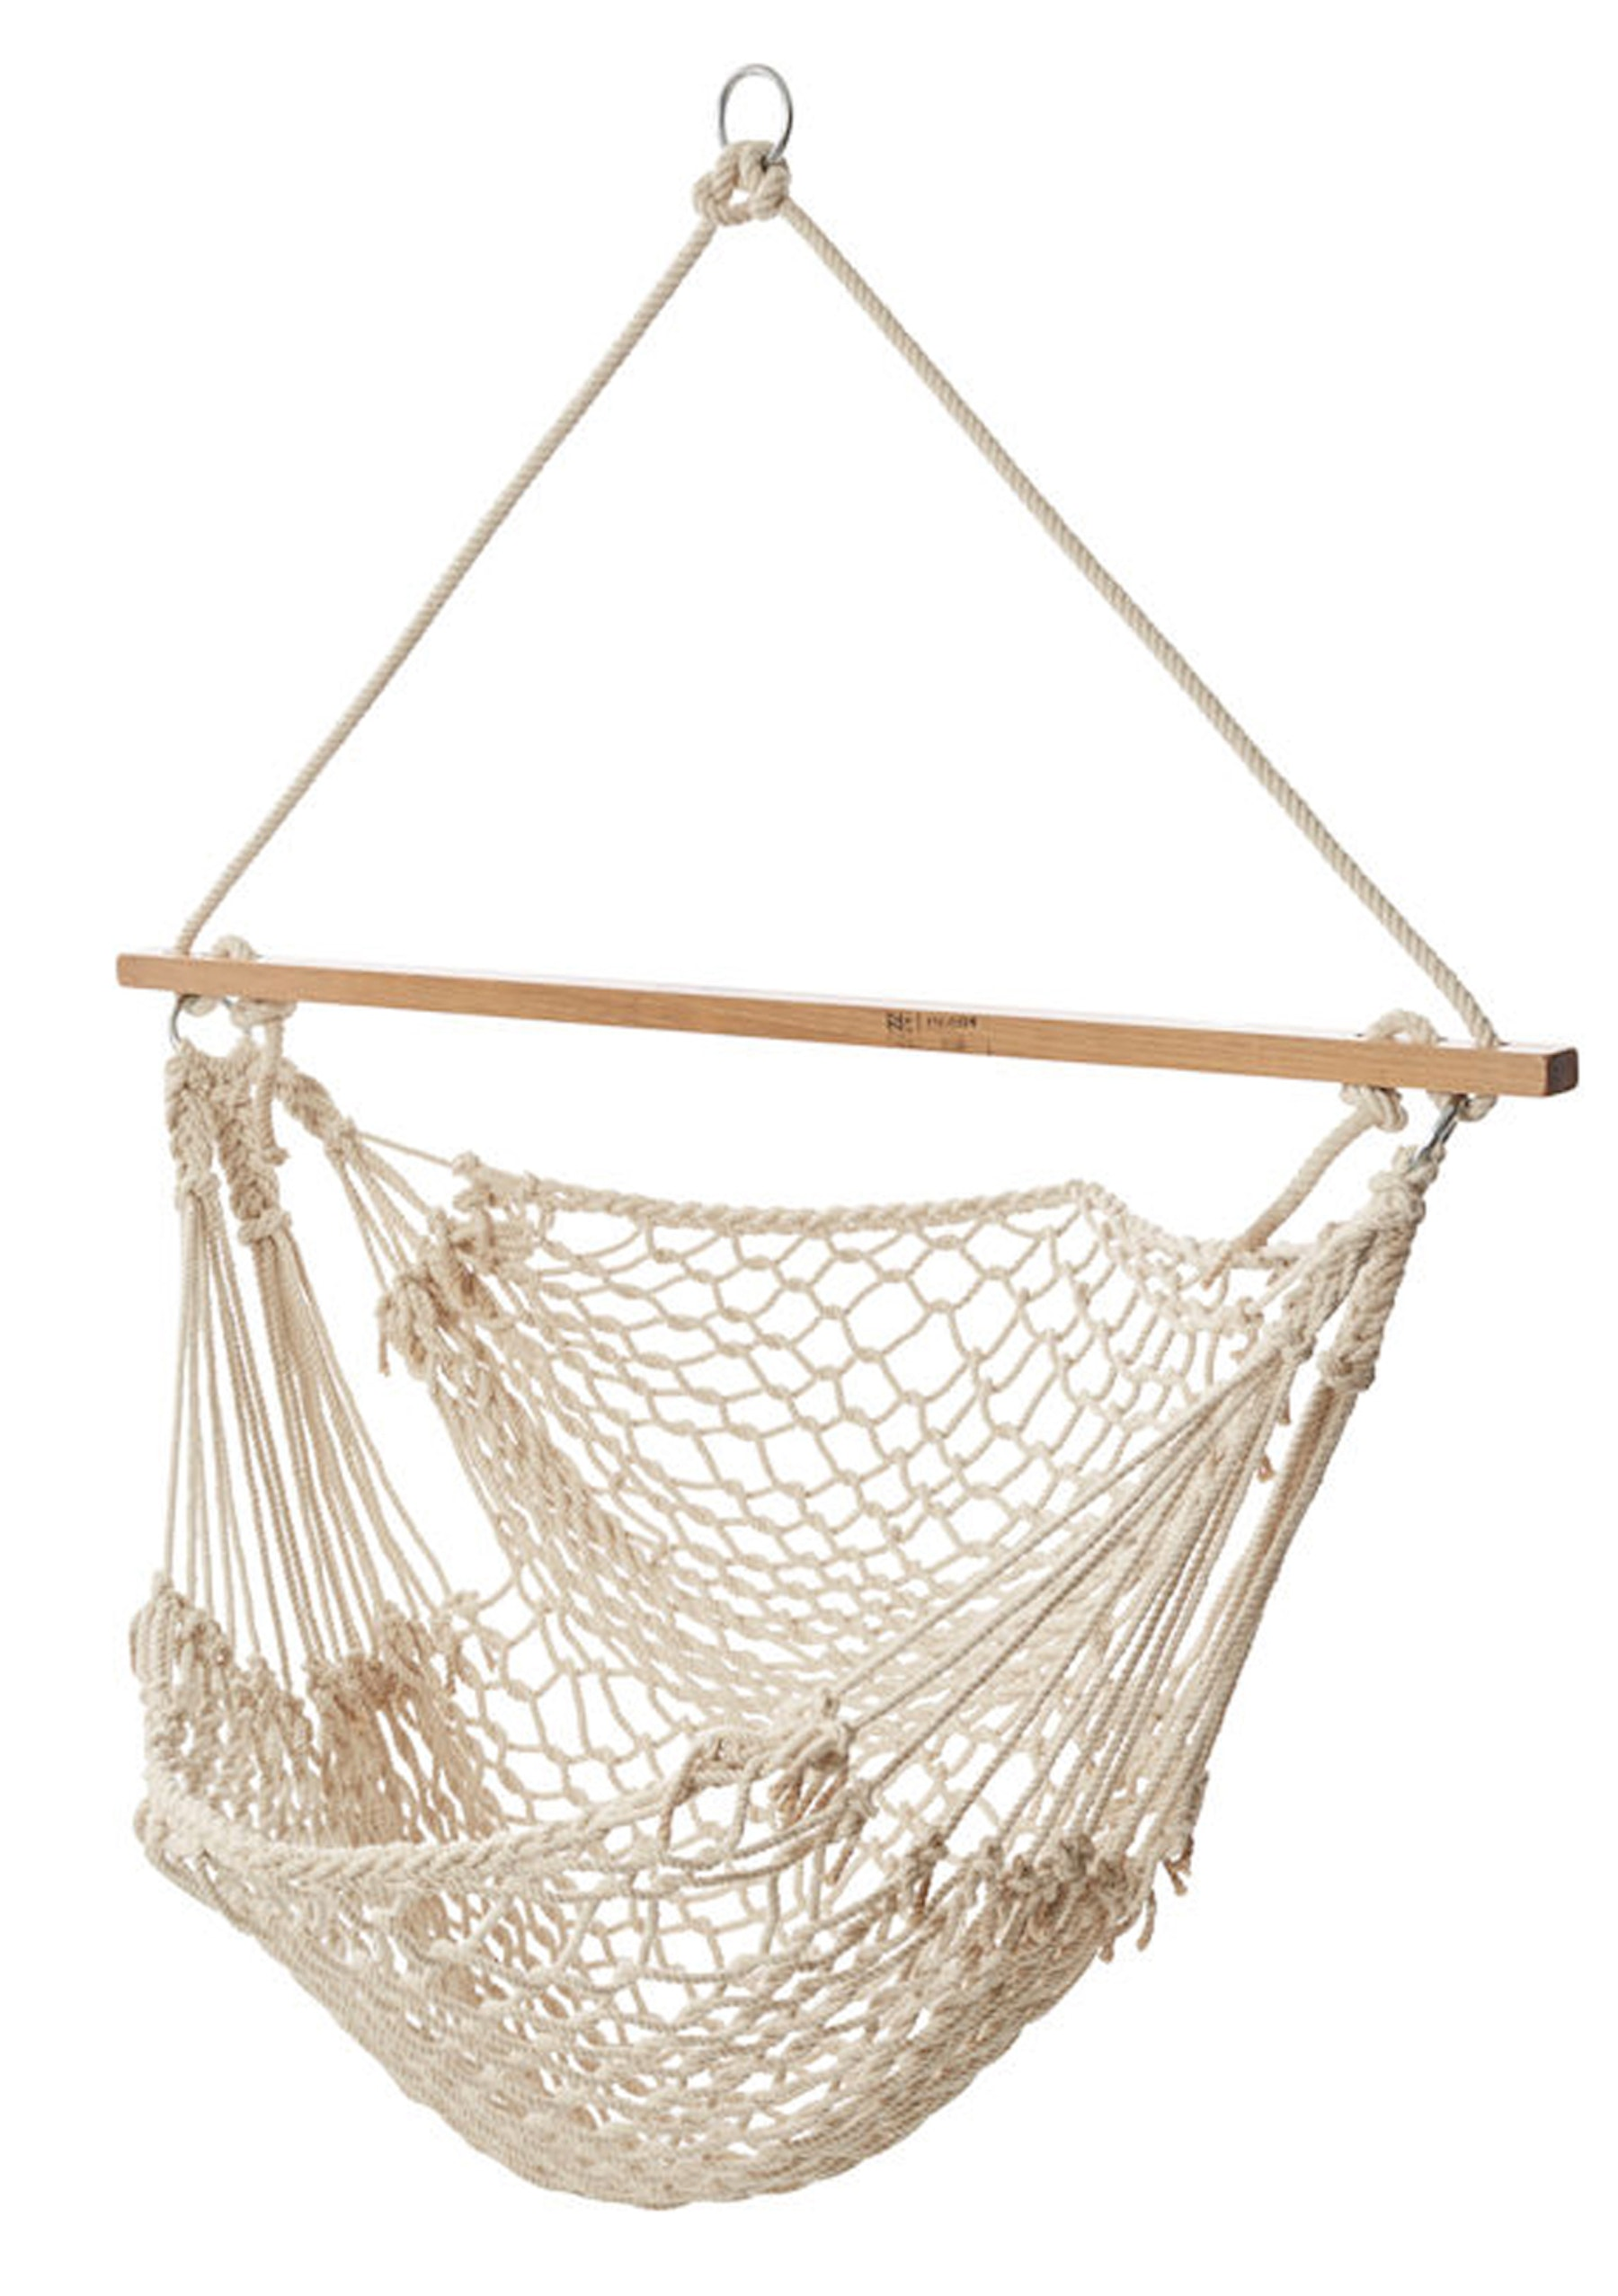 Amalfi Hammock Chair Stylish Gifts for the Home ceit